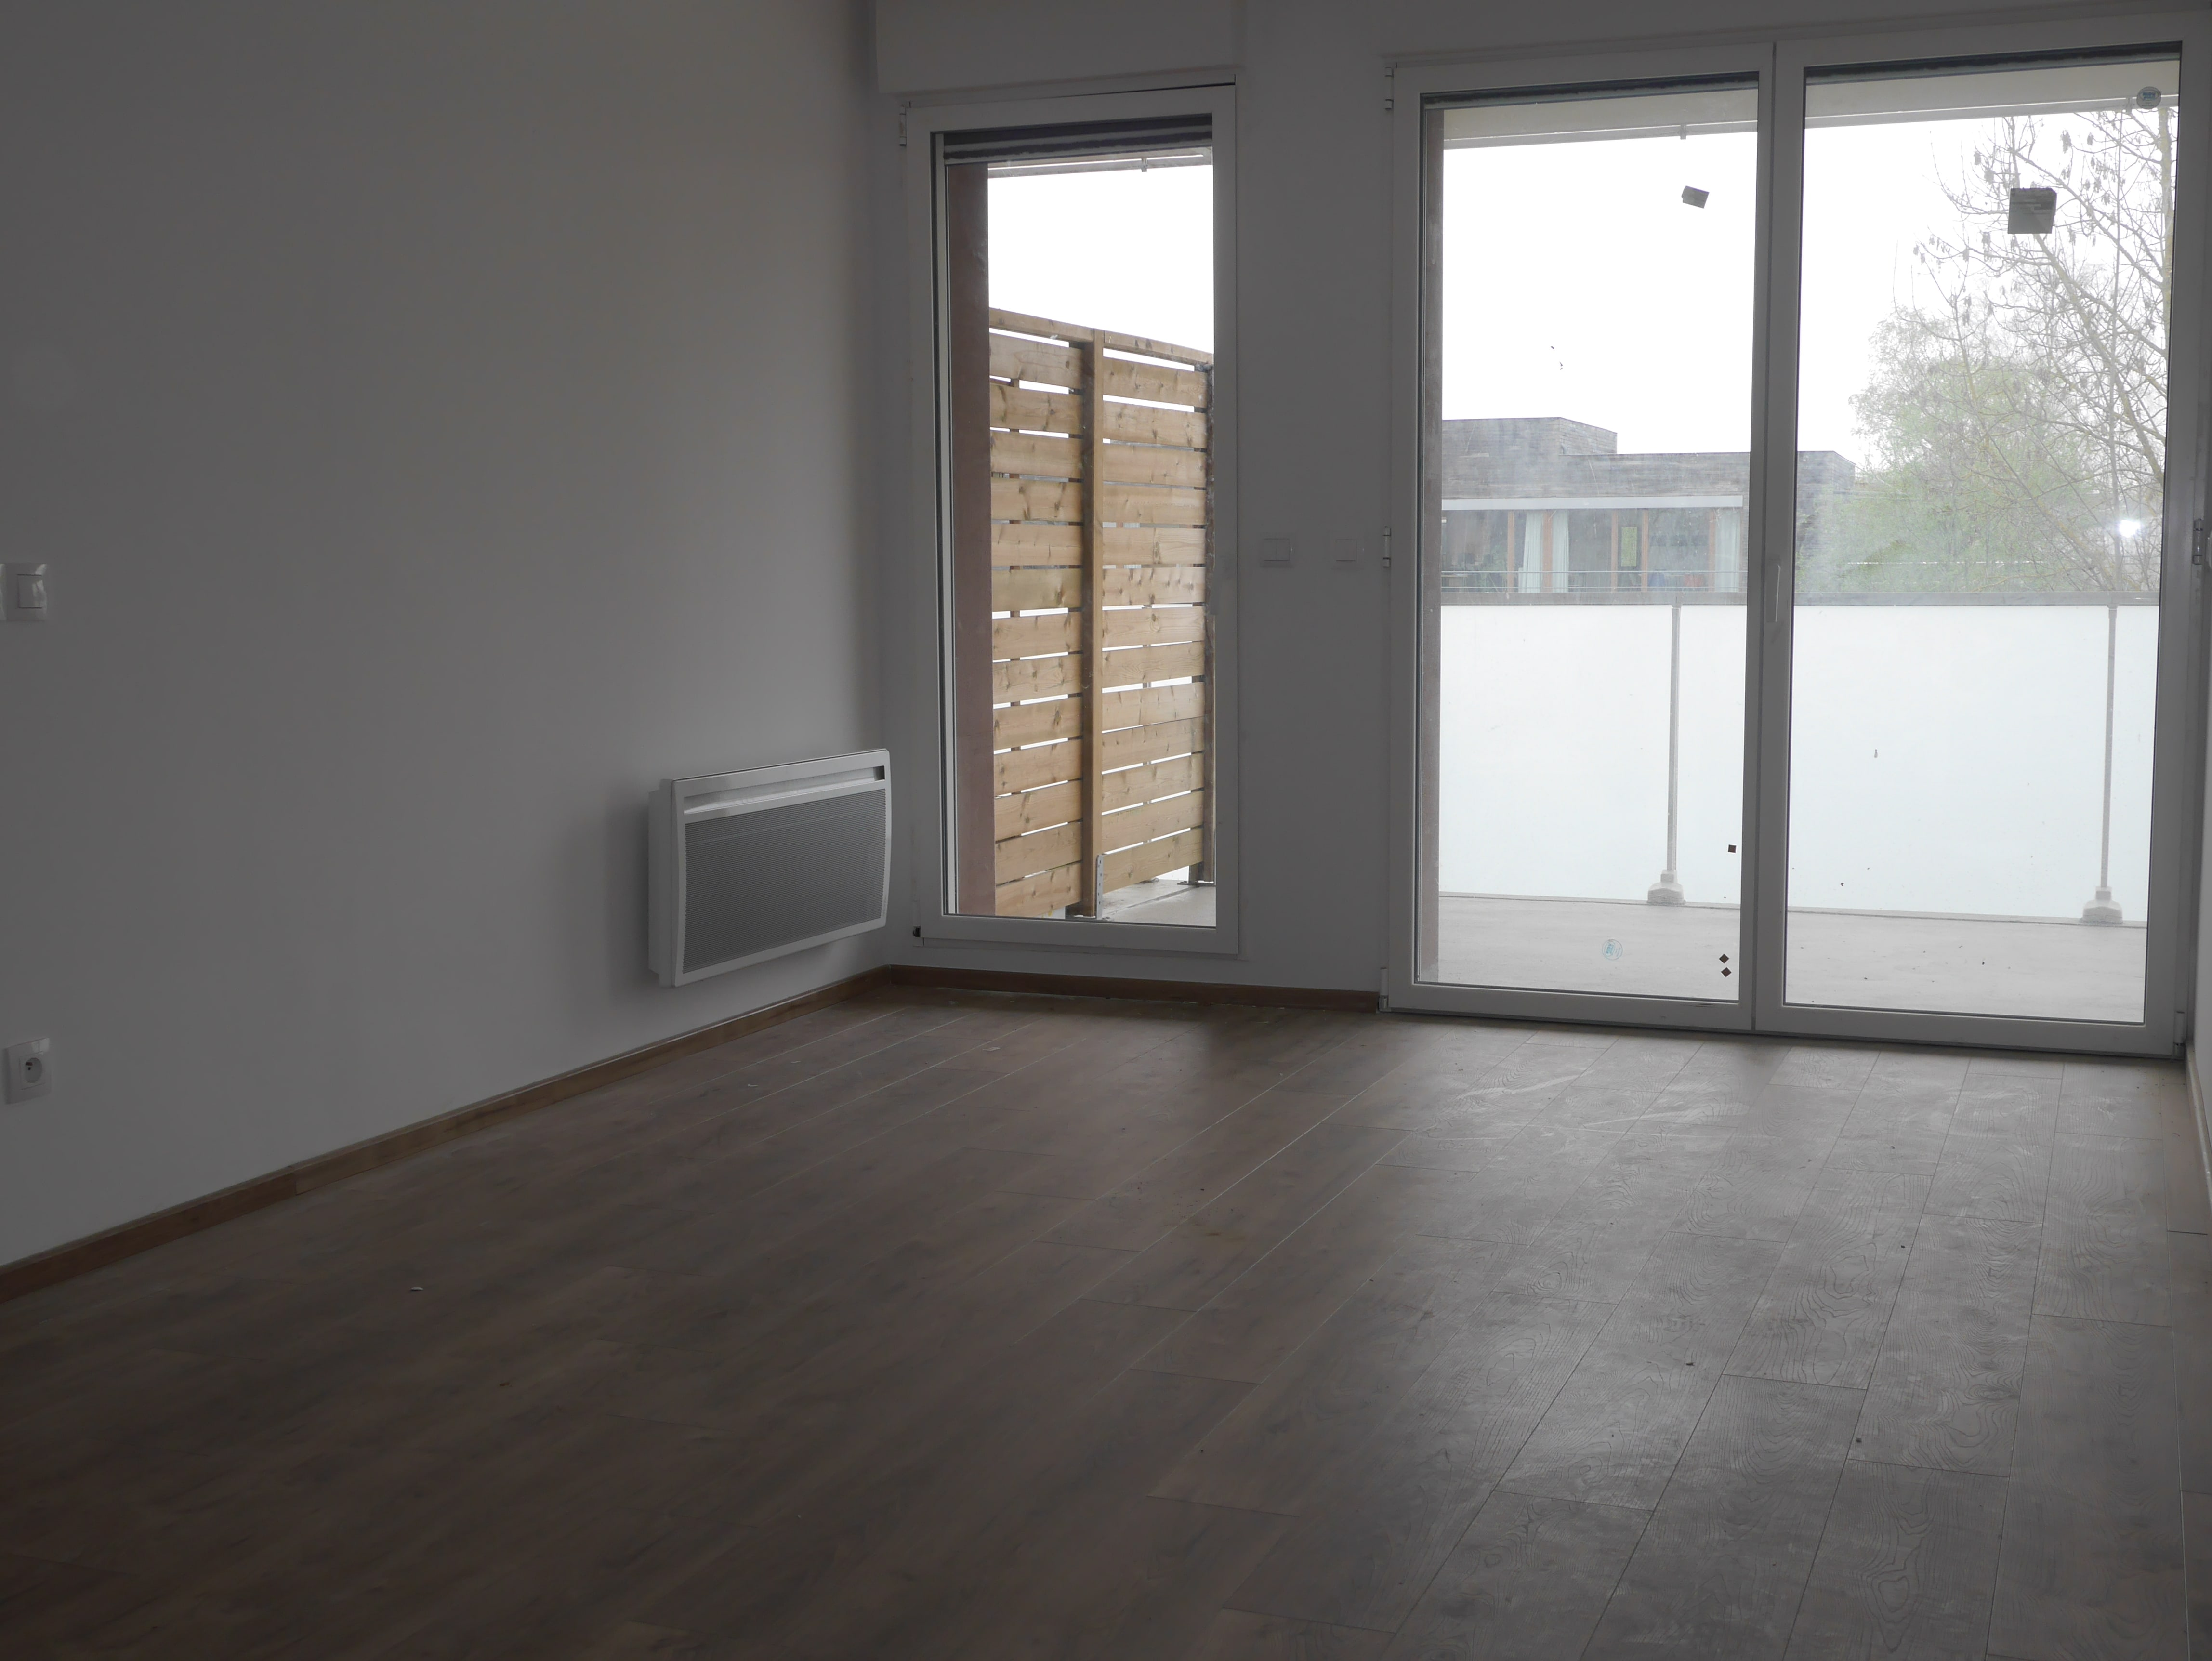 Damonte LOCATION APPARTEMENT T3 CHALONS EN CHAMPAGNE CL 1593